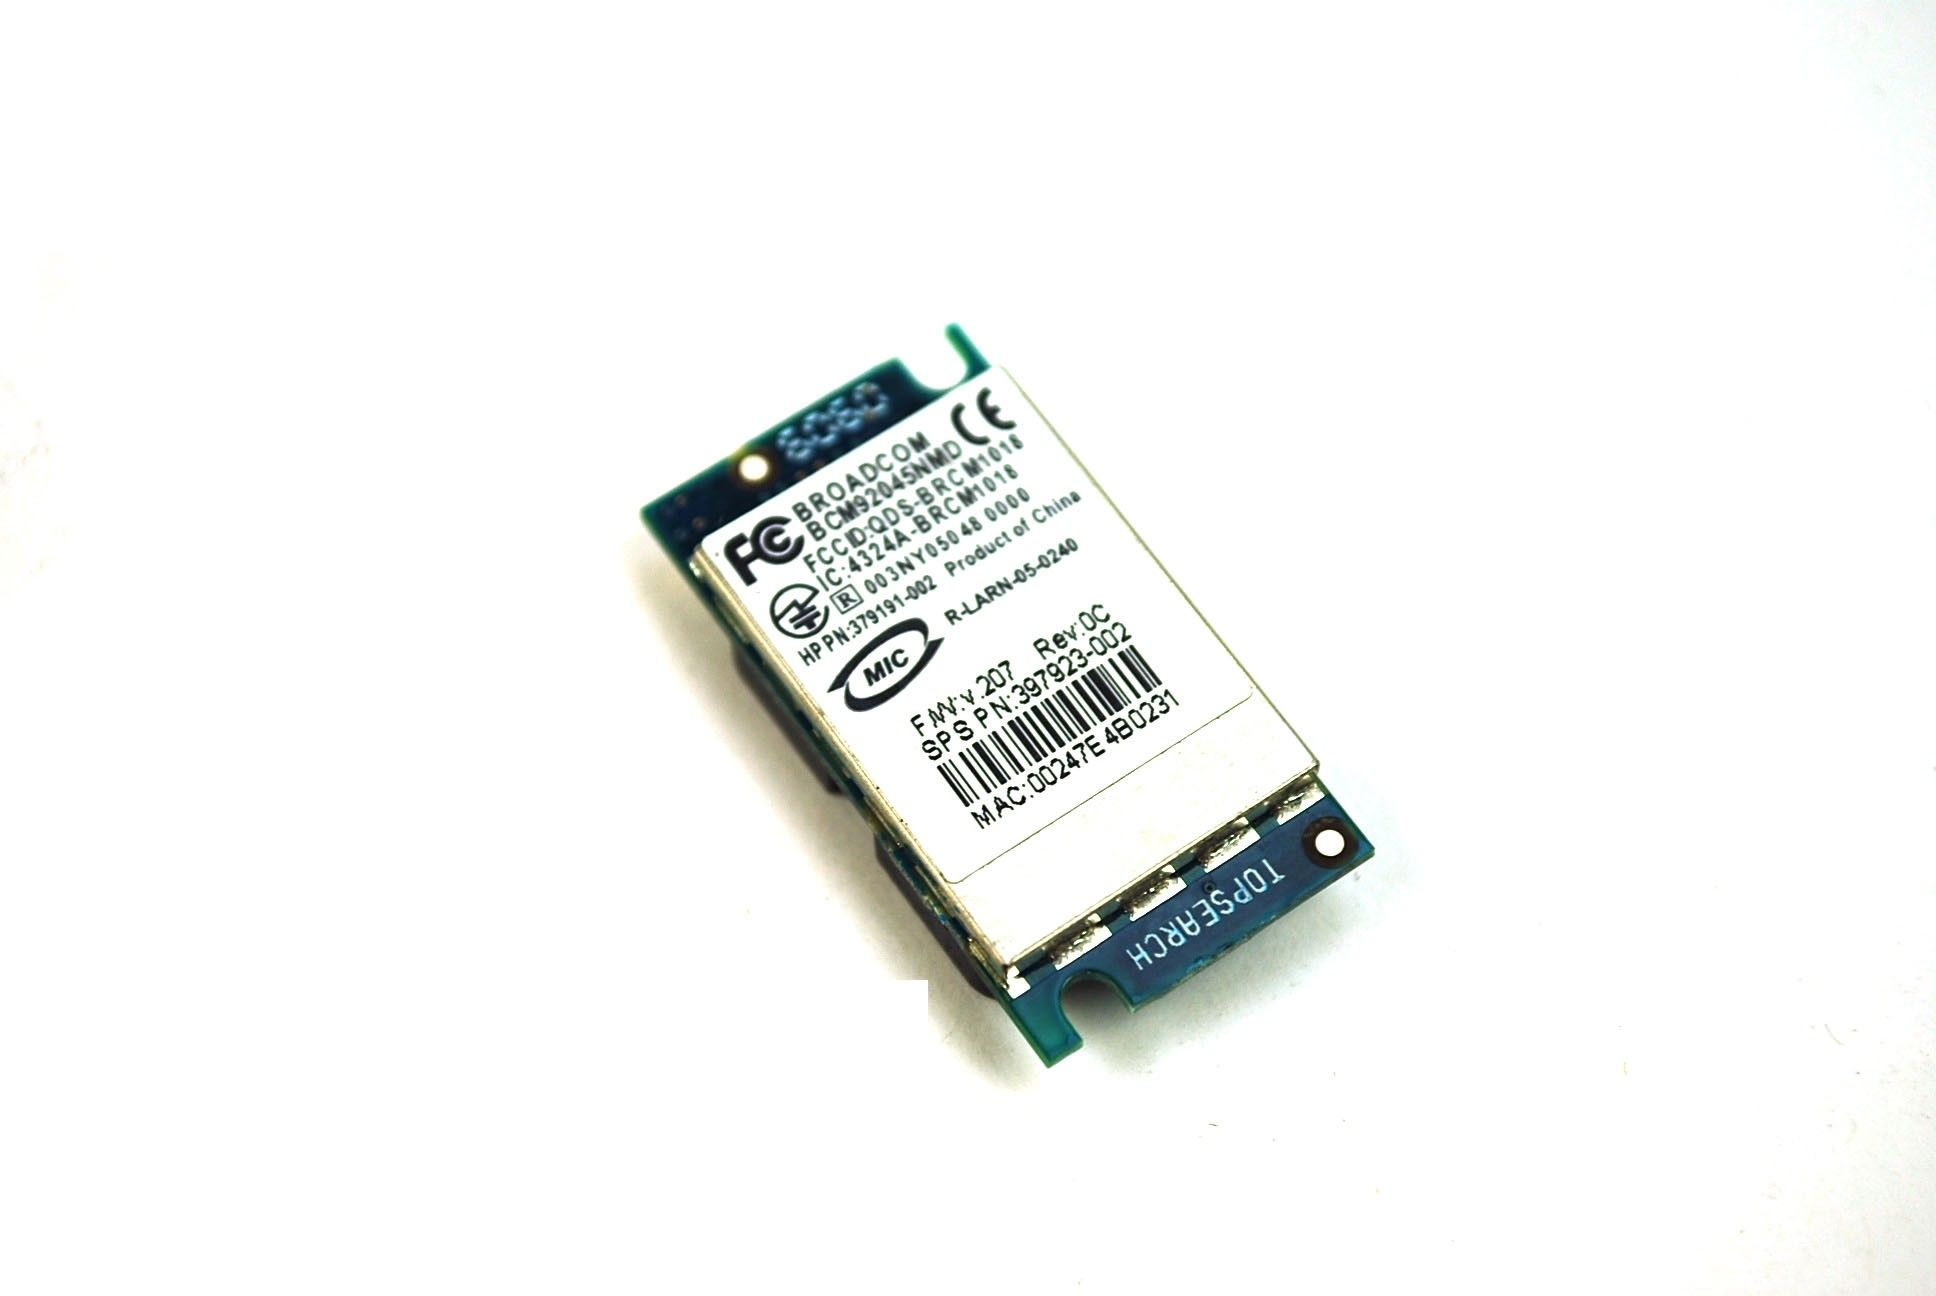 Ralink Rt3290 Wifi Drivers For Mac - loadfilter